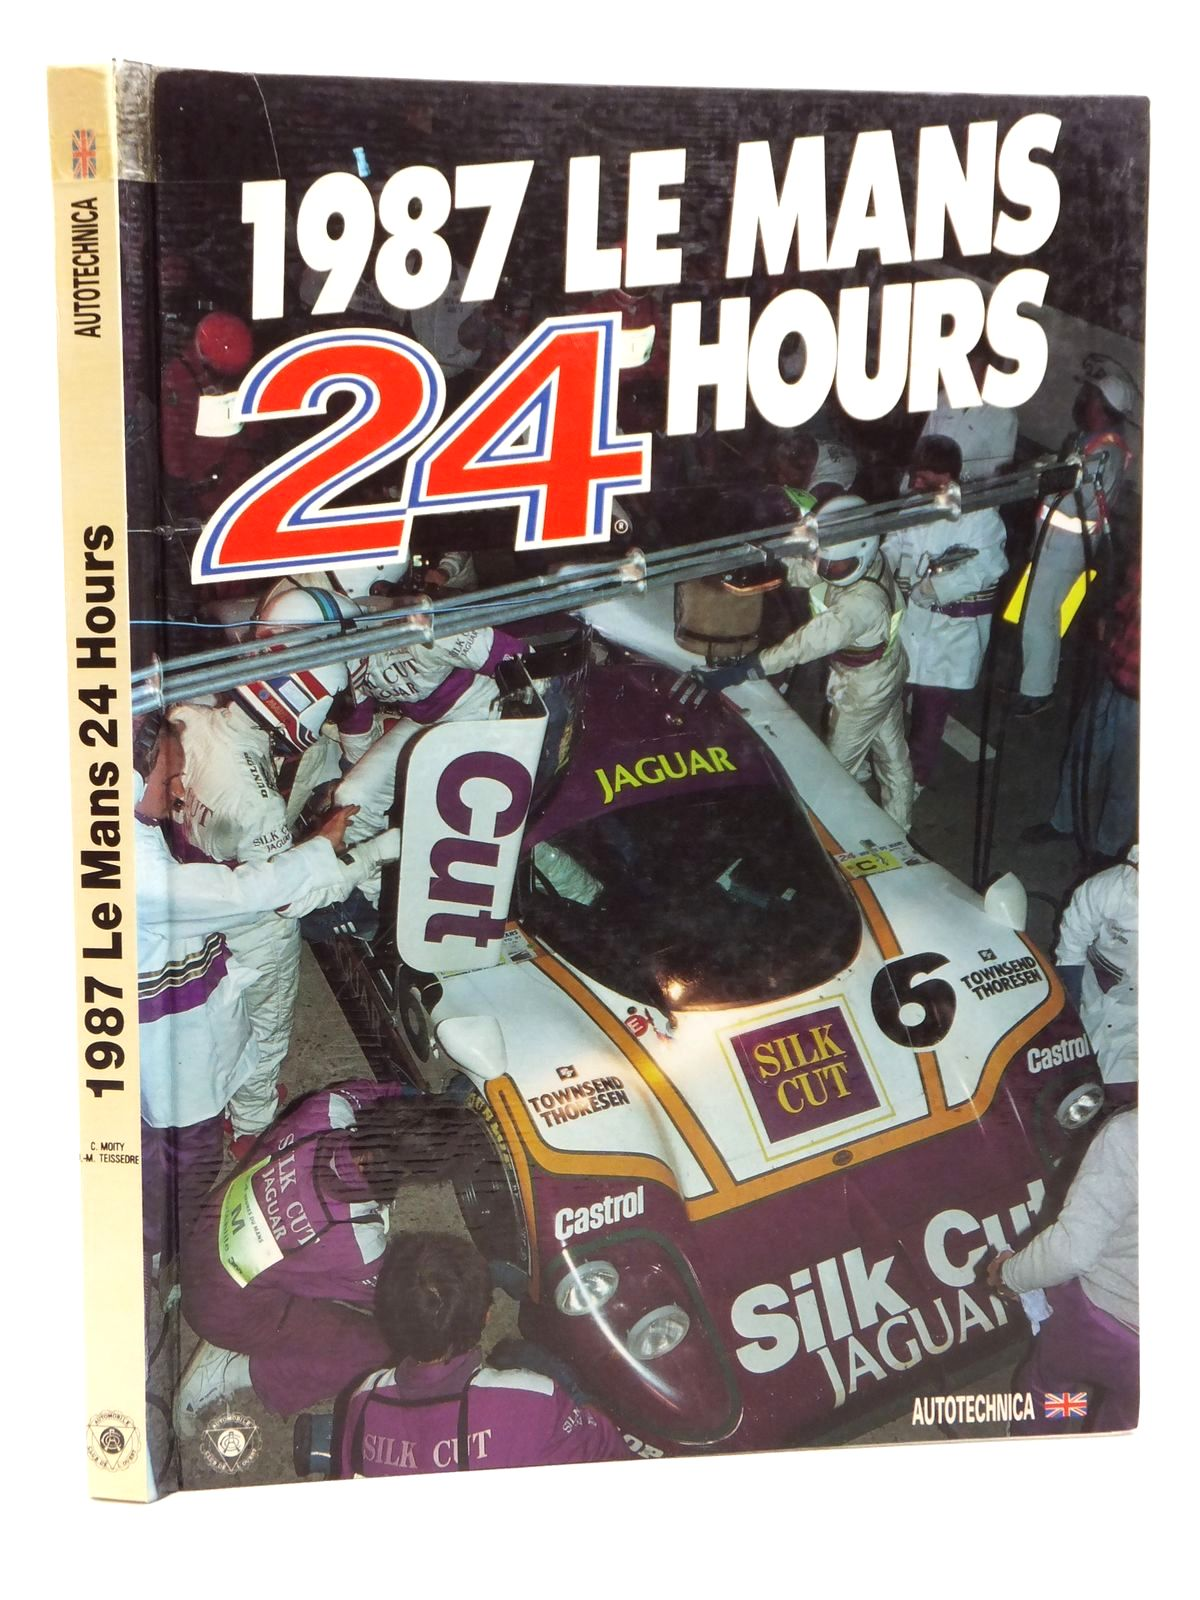 Photo of 1987 LE MANS 24 HOURS written by Teissedre, Jean-Marc Moity, Christian published by Autotechnica (STOCK CODE: 2122986)  for sale by Stella & Rose's Books